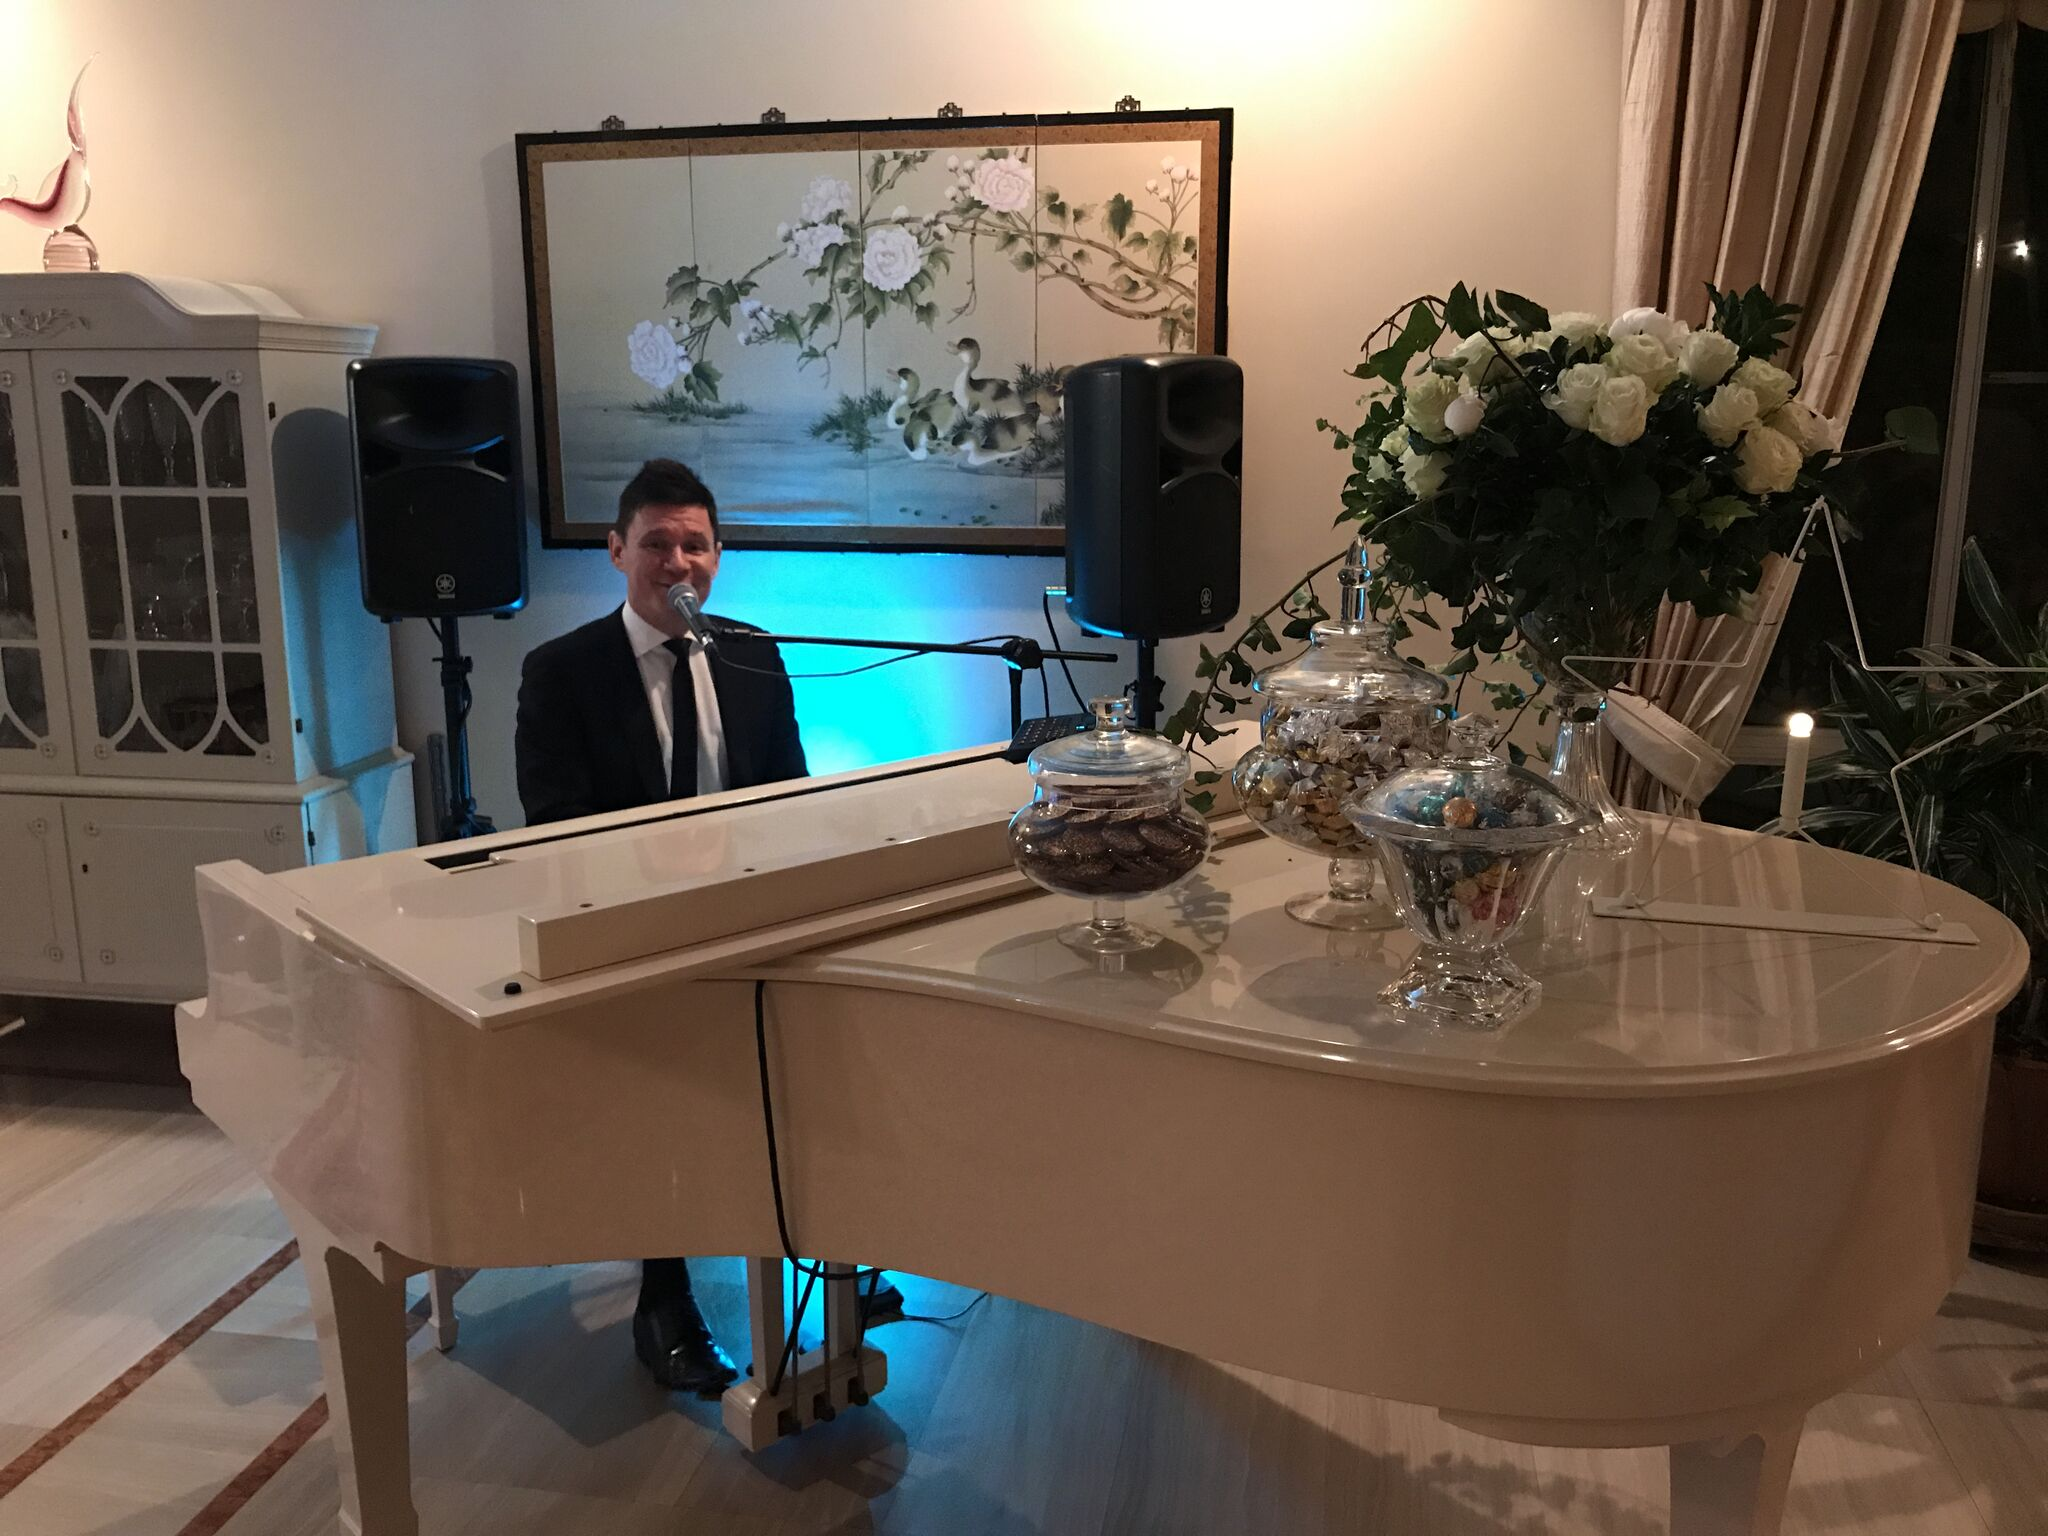 Twinkle Twinkle Little Star Themed Baby Shower - Piano Man